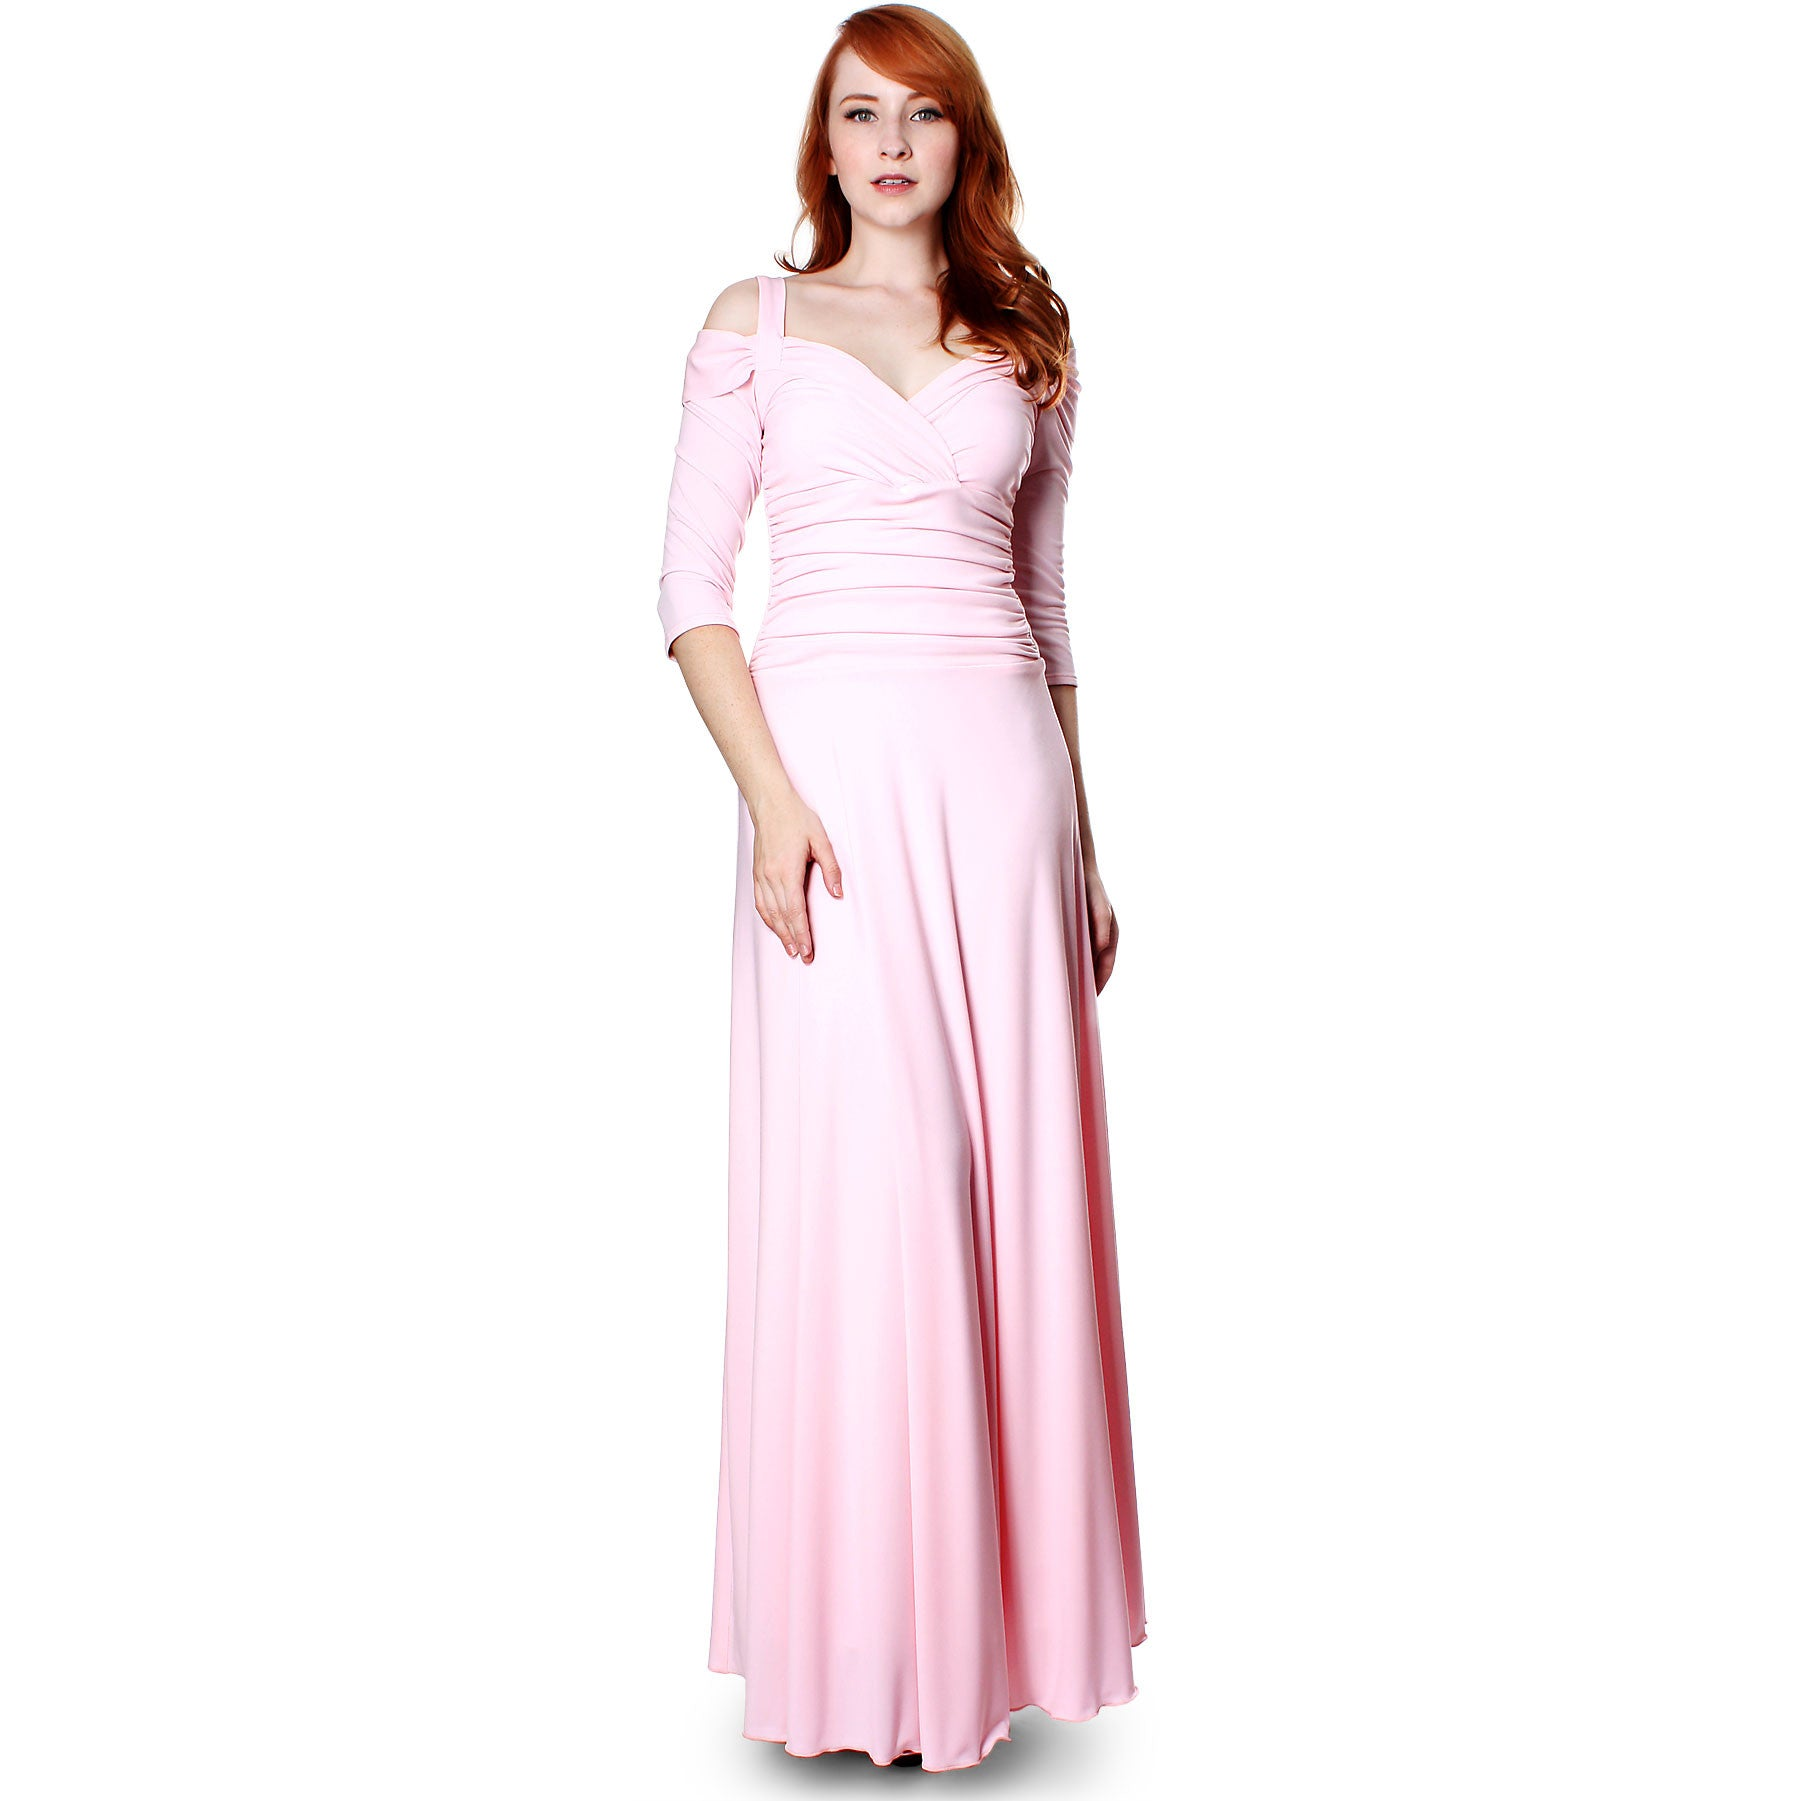 Evanese Womens Elegant Formal Long Evening Dress With 34 Sleeves